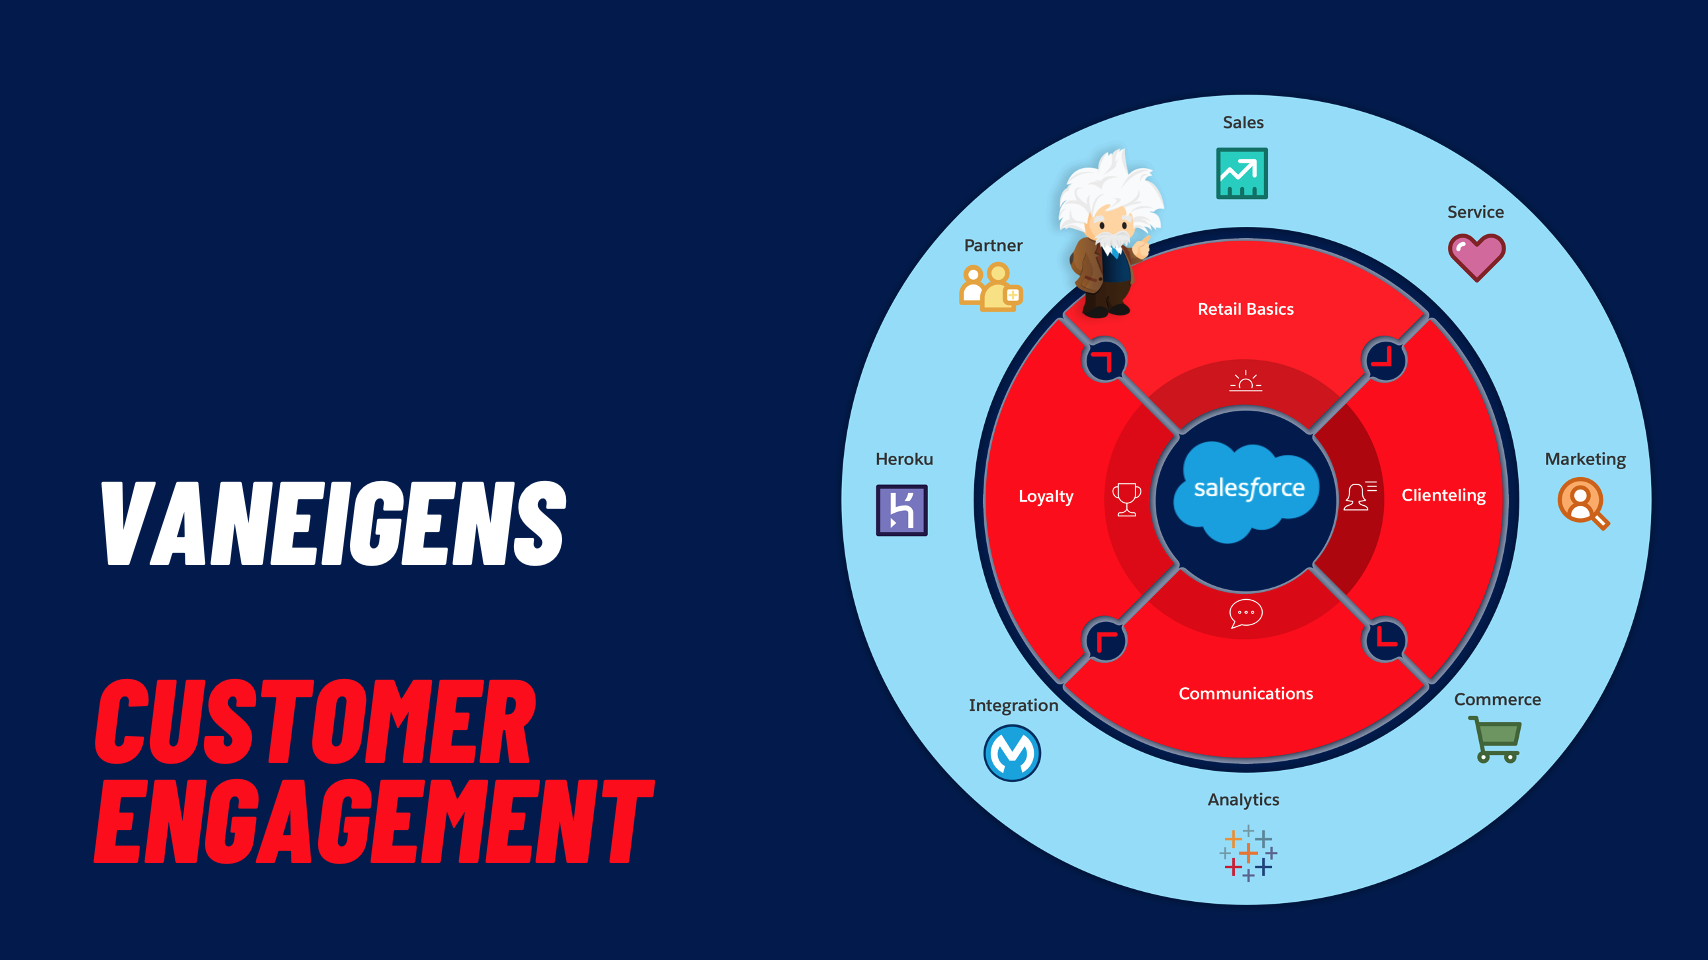 Vaneigens-Customer-Engagement